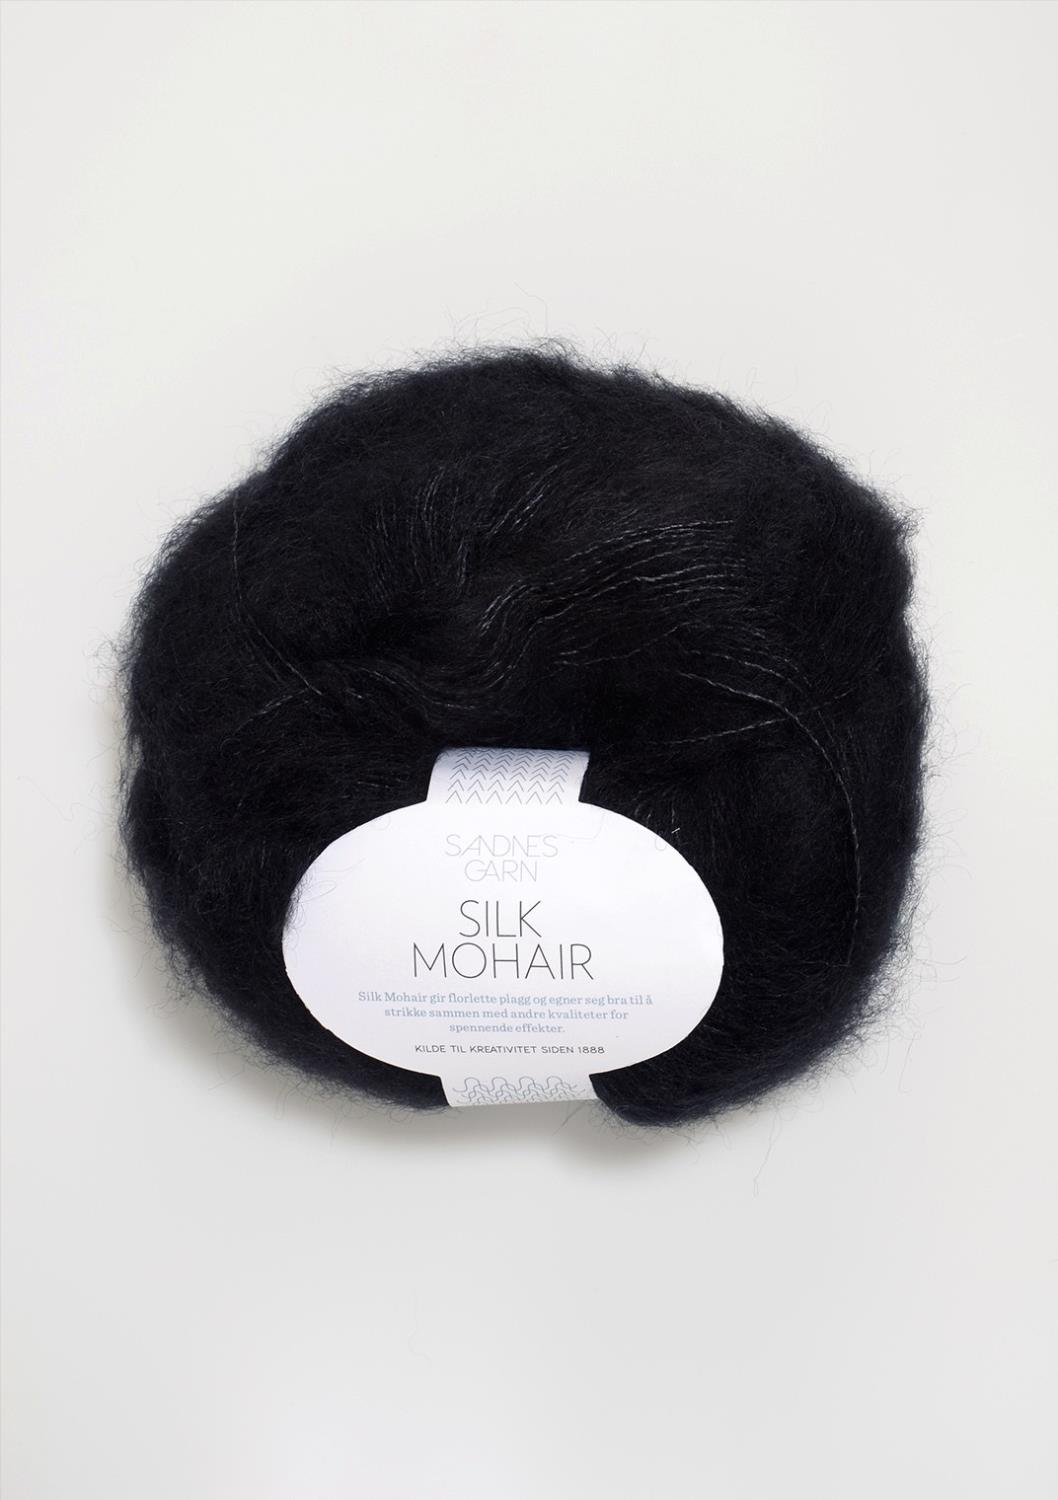 SILK/MOHAIR Sort 1099